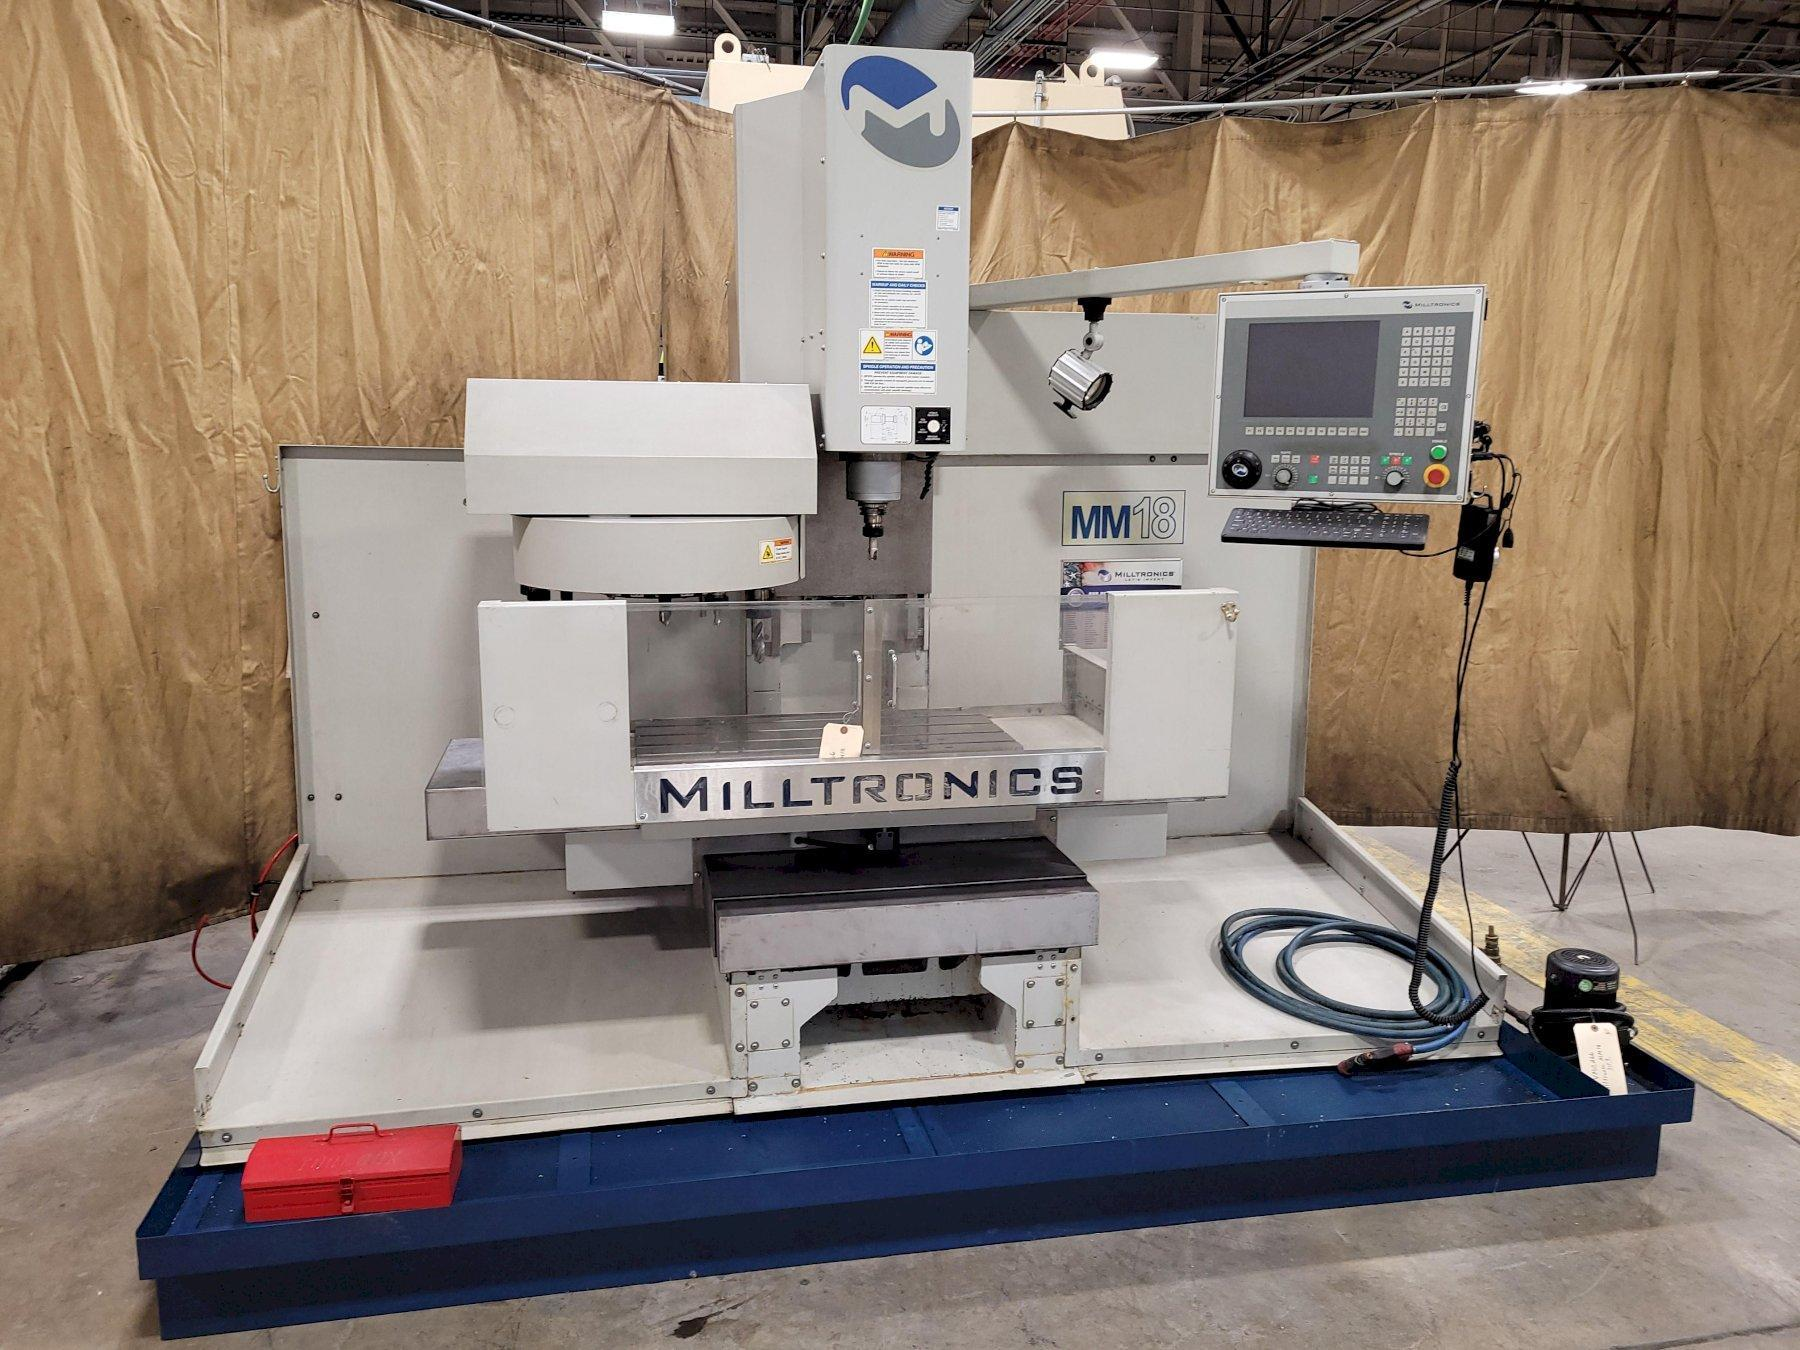 Milltronics Model MM18 CNC Toolroom Vertical Machining Center